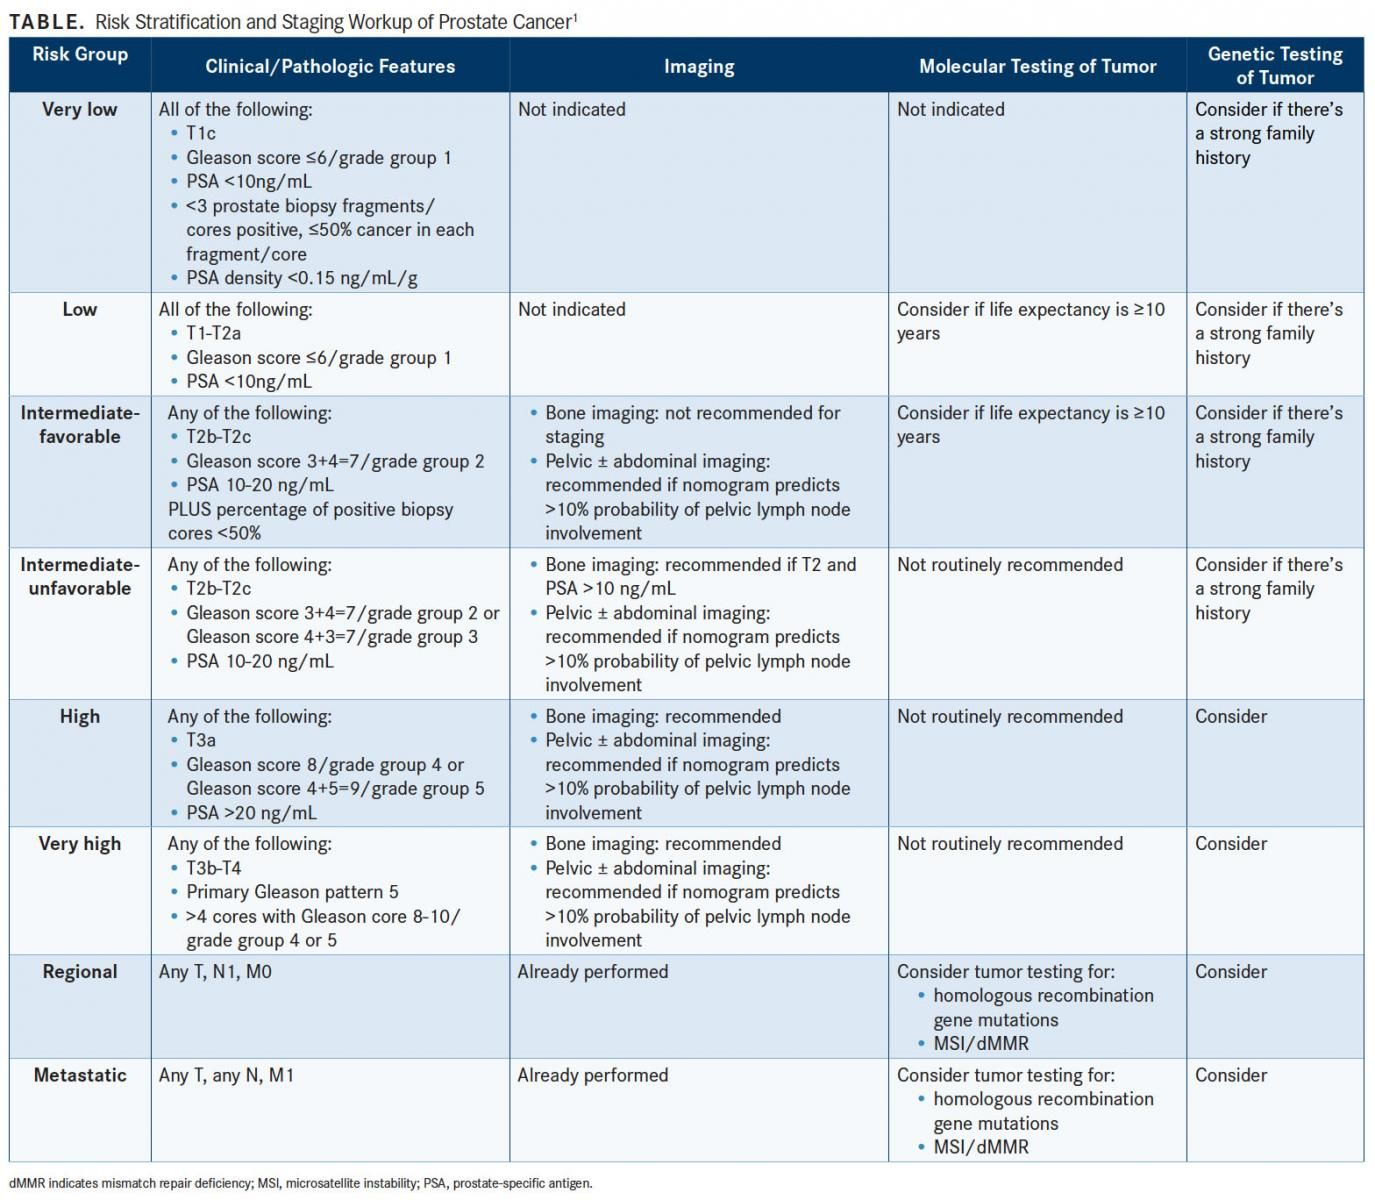 Nccn Prostate Cancer Guidelines Emphasize Risk Stratification Targeted Oncology Immunotherapy Biomarkers And Cancer Pathways